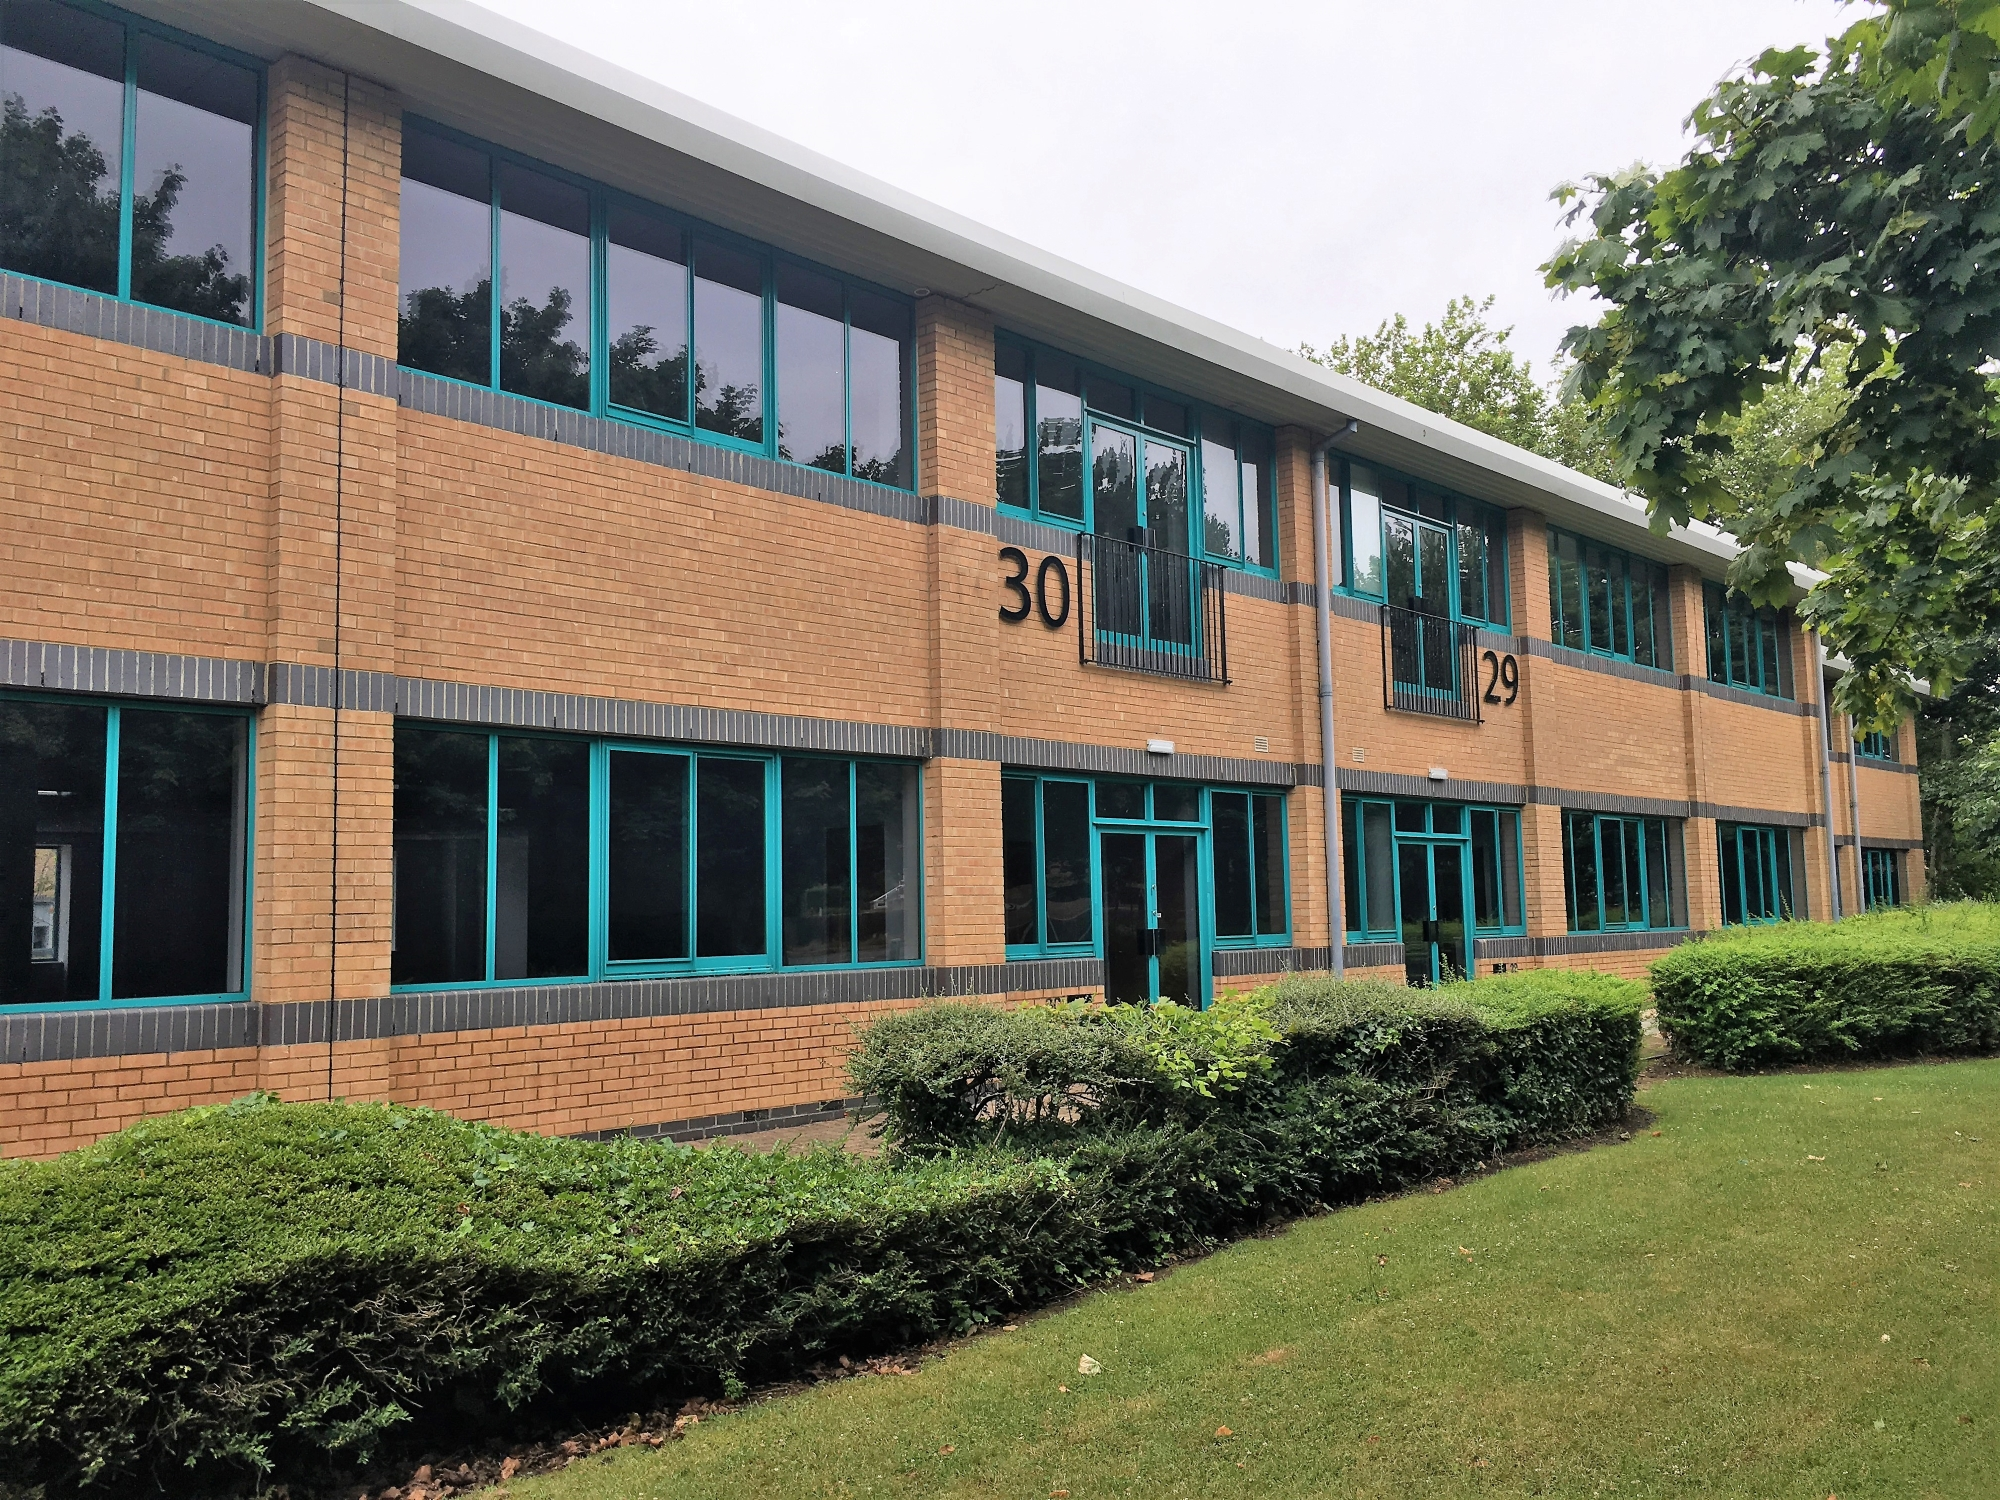 Similar property | 29 & 30 The Quadrant - Abingdon Science Park